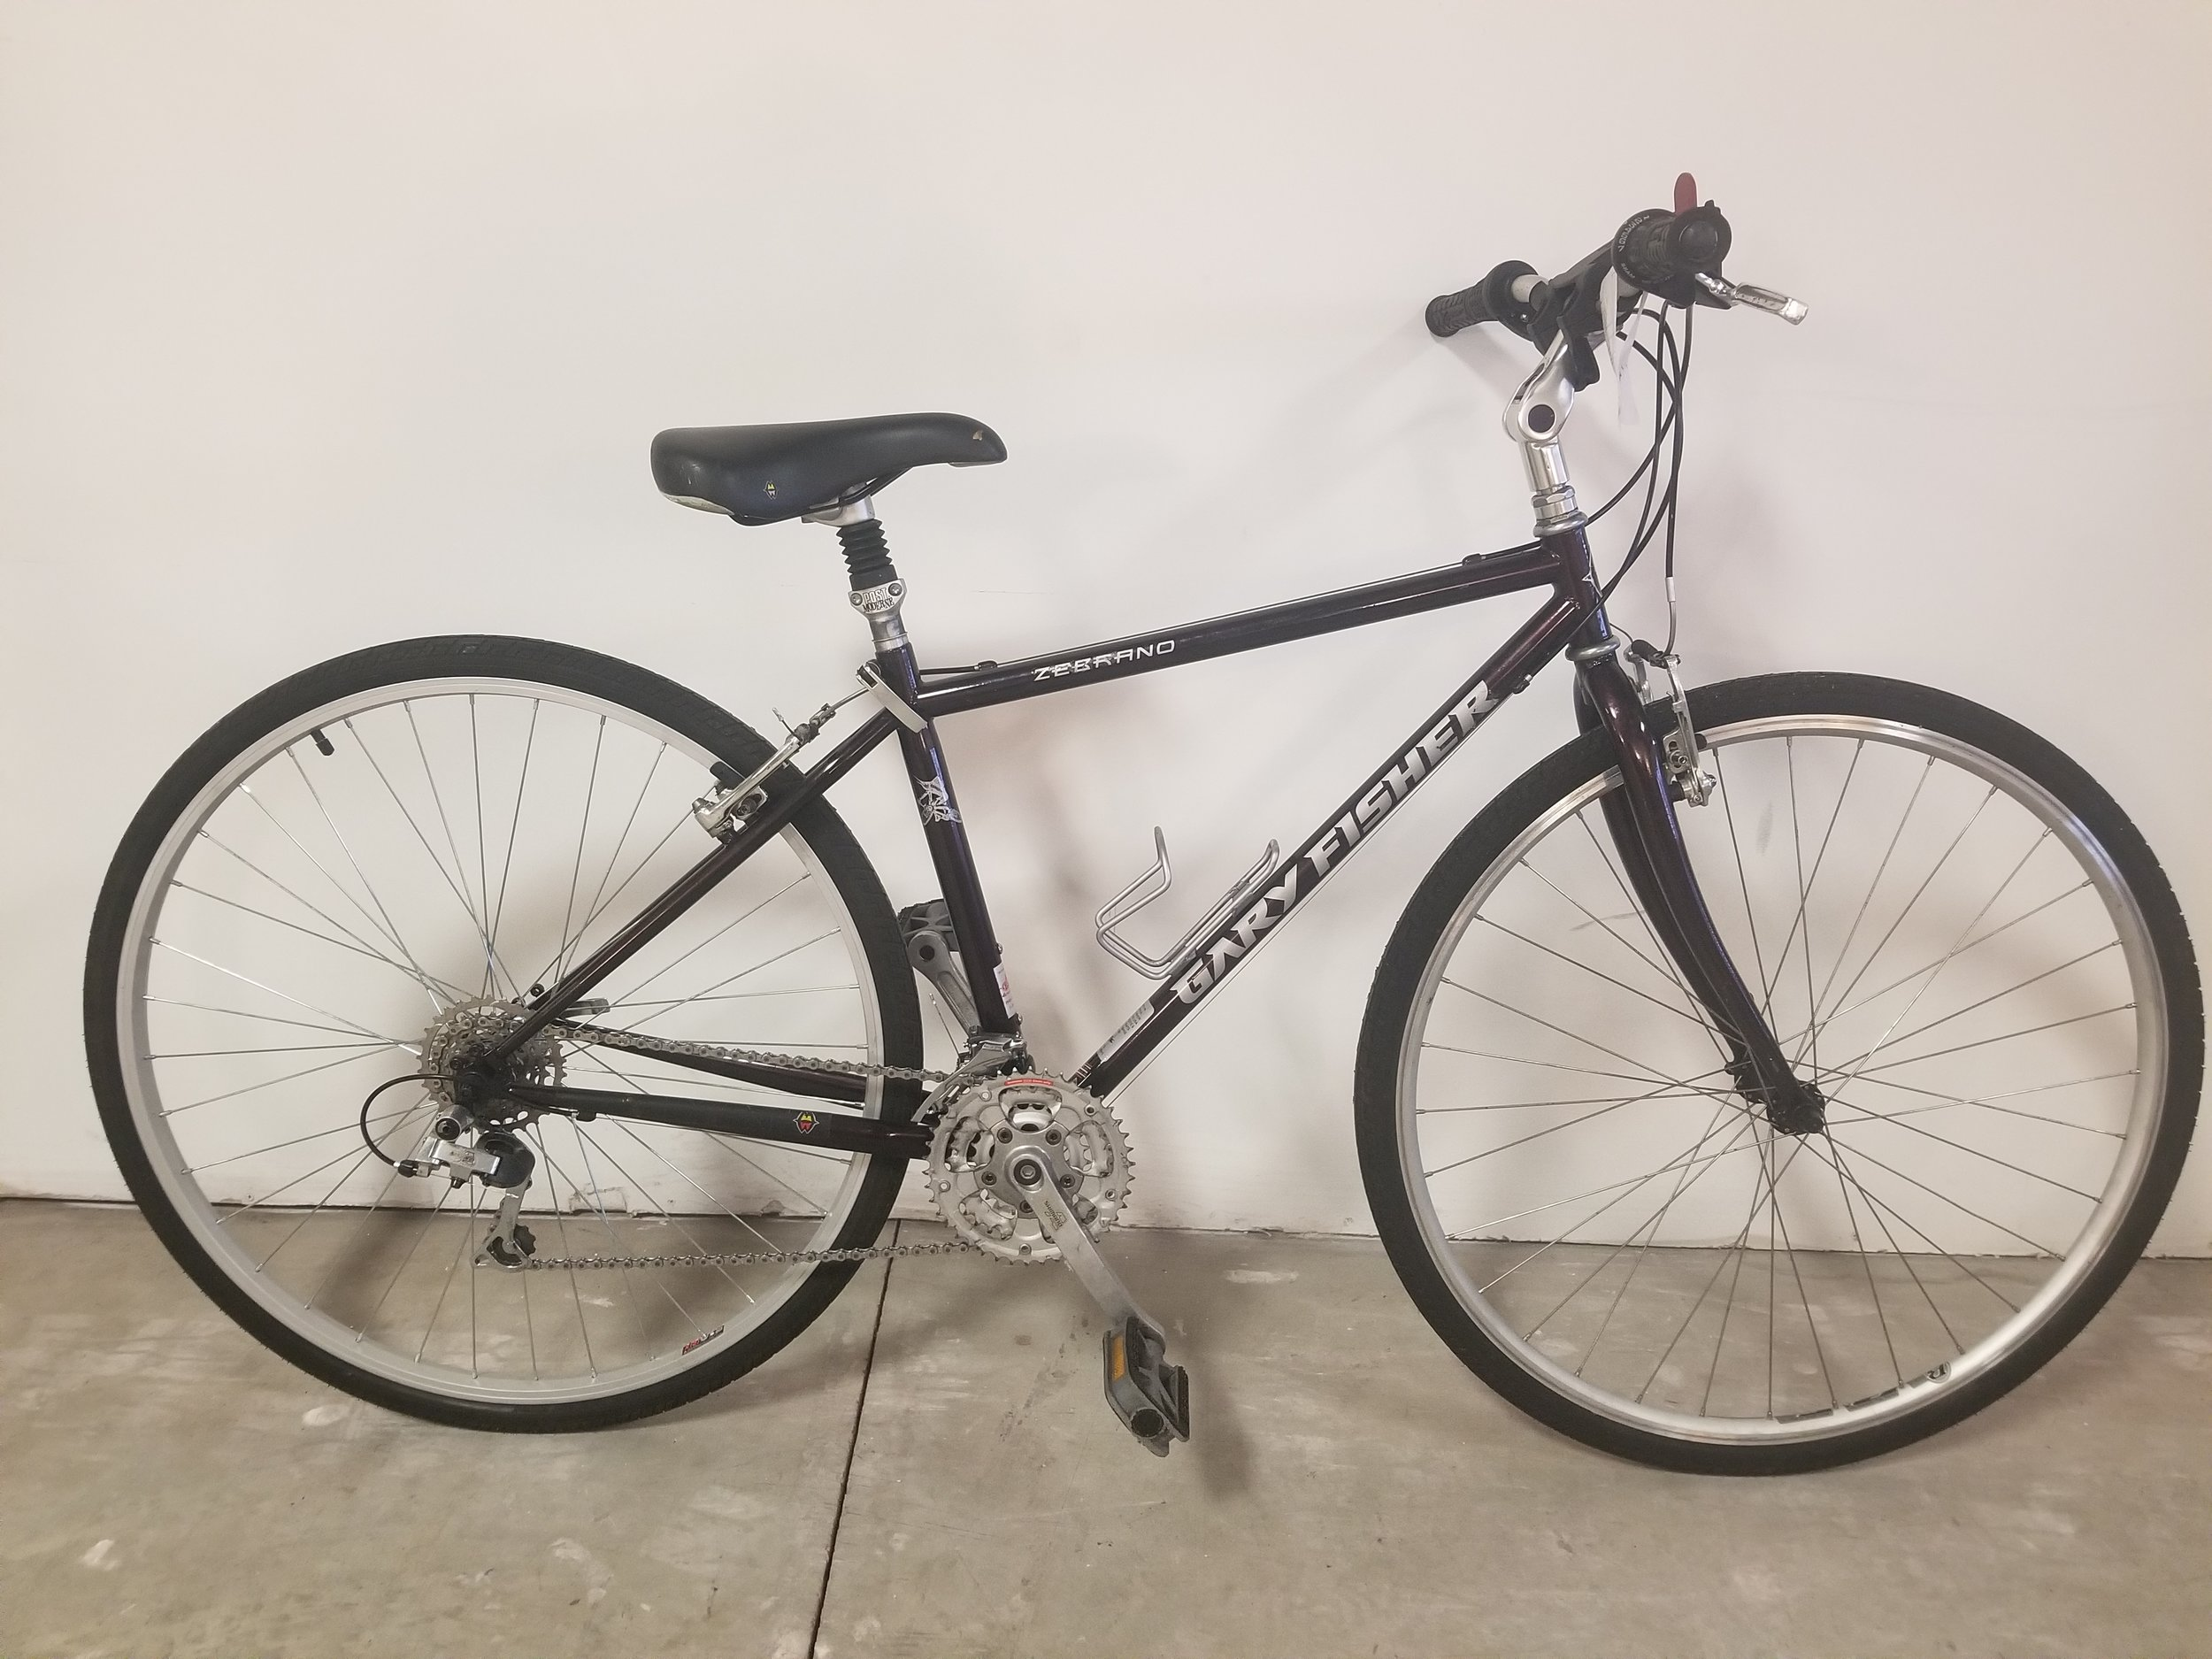 """Gary Fisher Zebrano 15"""" - Used Hybrid Bike.New chain and freewheel. Full Tune-Up and new cables/housing.700c wheels and 38 drivetrain. 15"""". Good for someone around 5.6""""$200"""